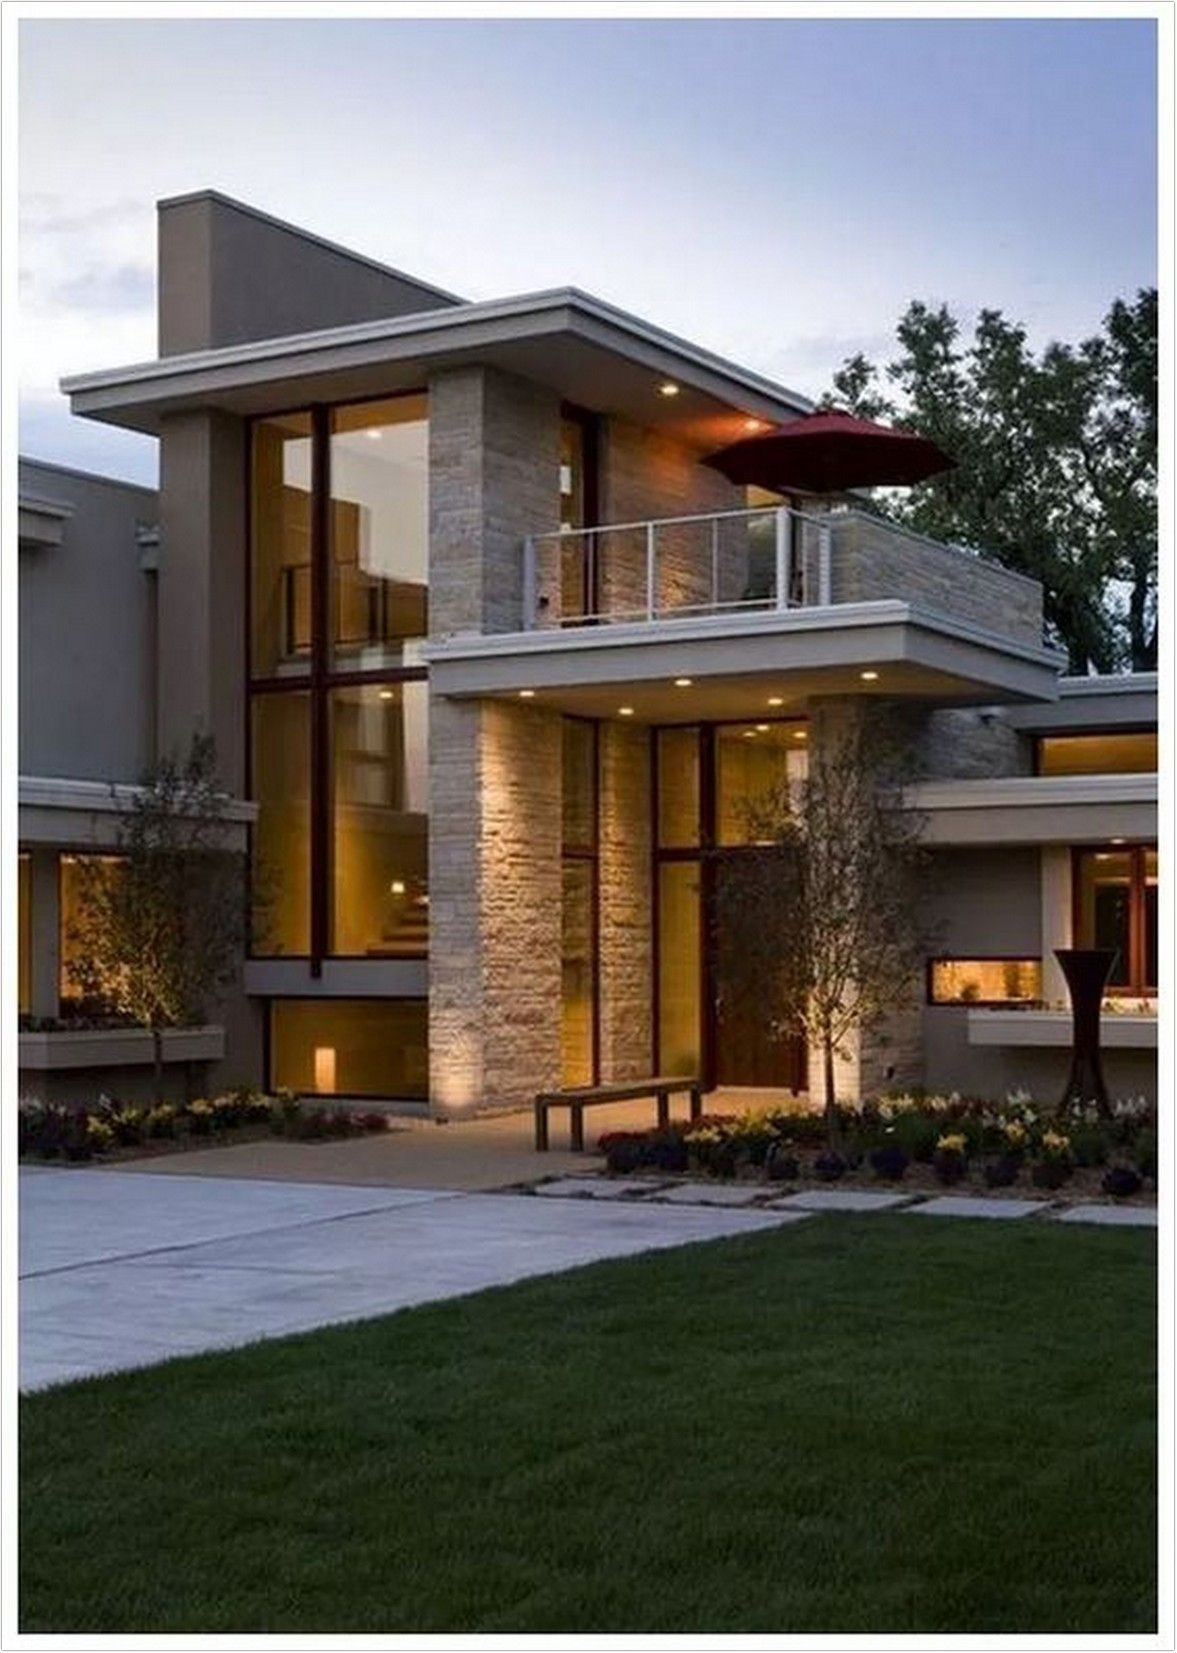 Modern House Design Pictures 2020 In 2020 House Design Pictures Modern House Exterior Modern House Plans